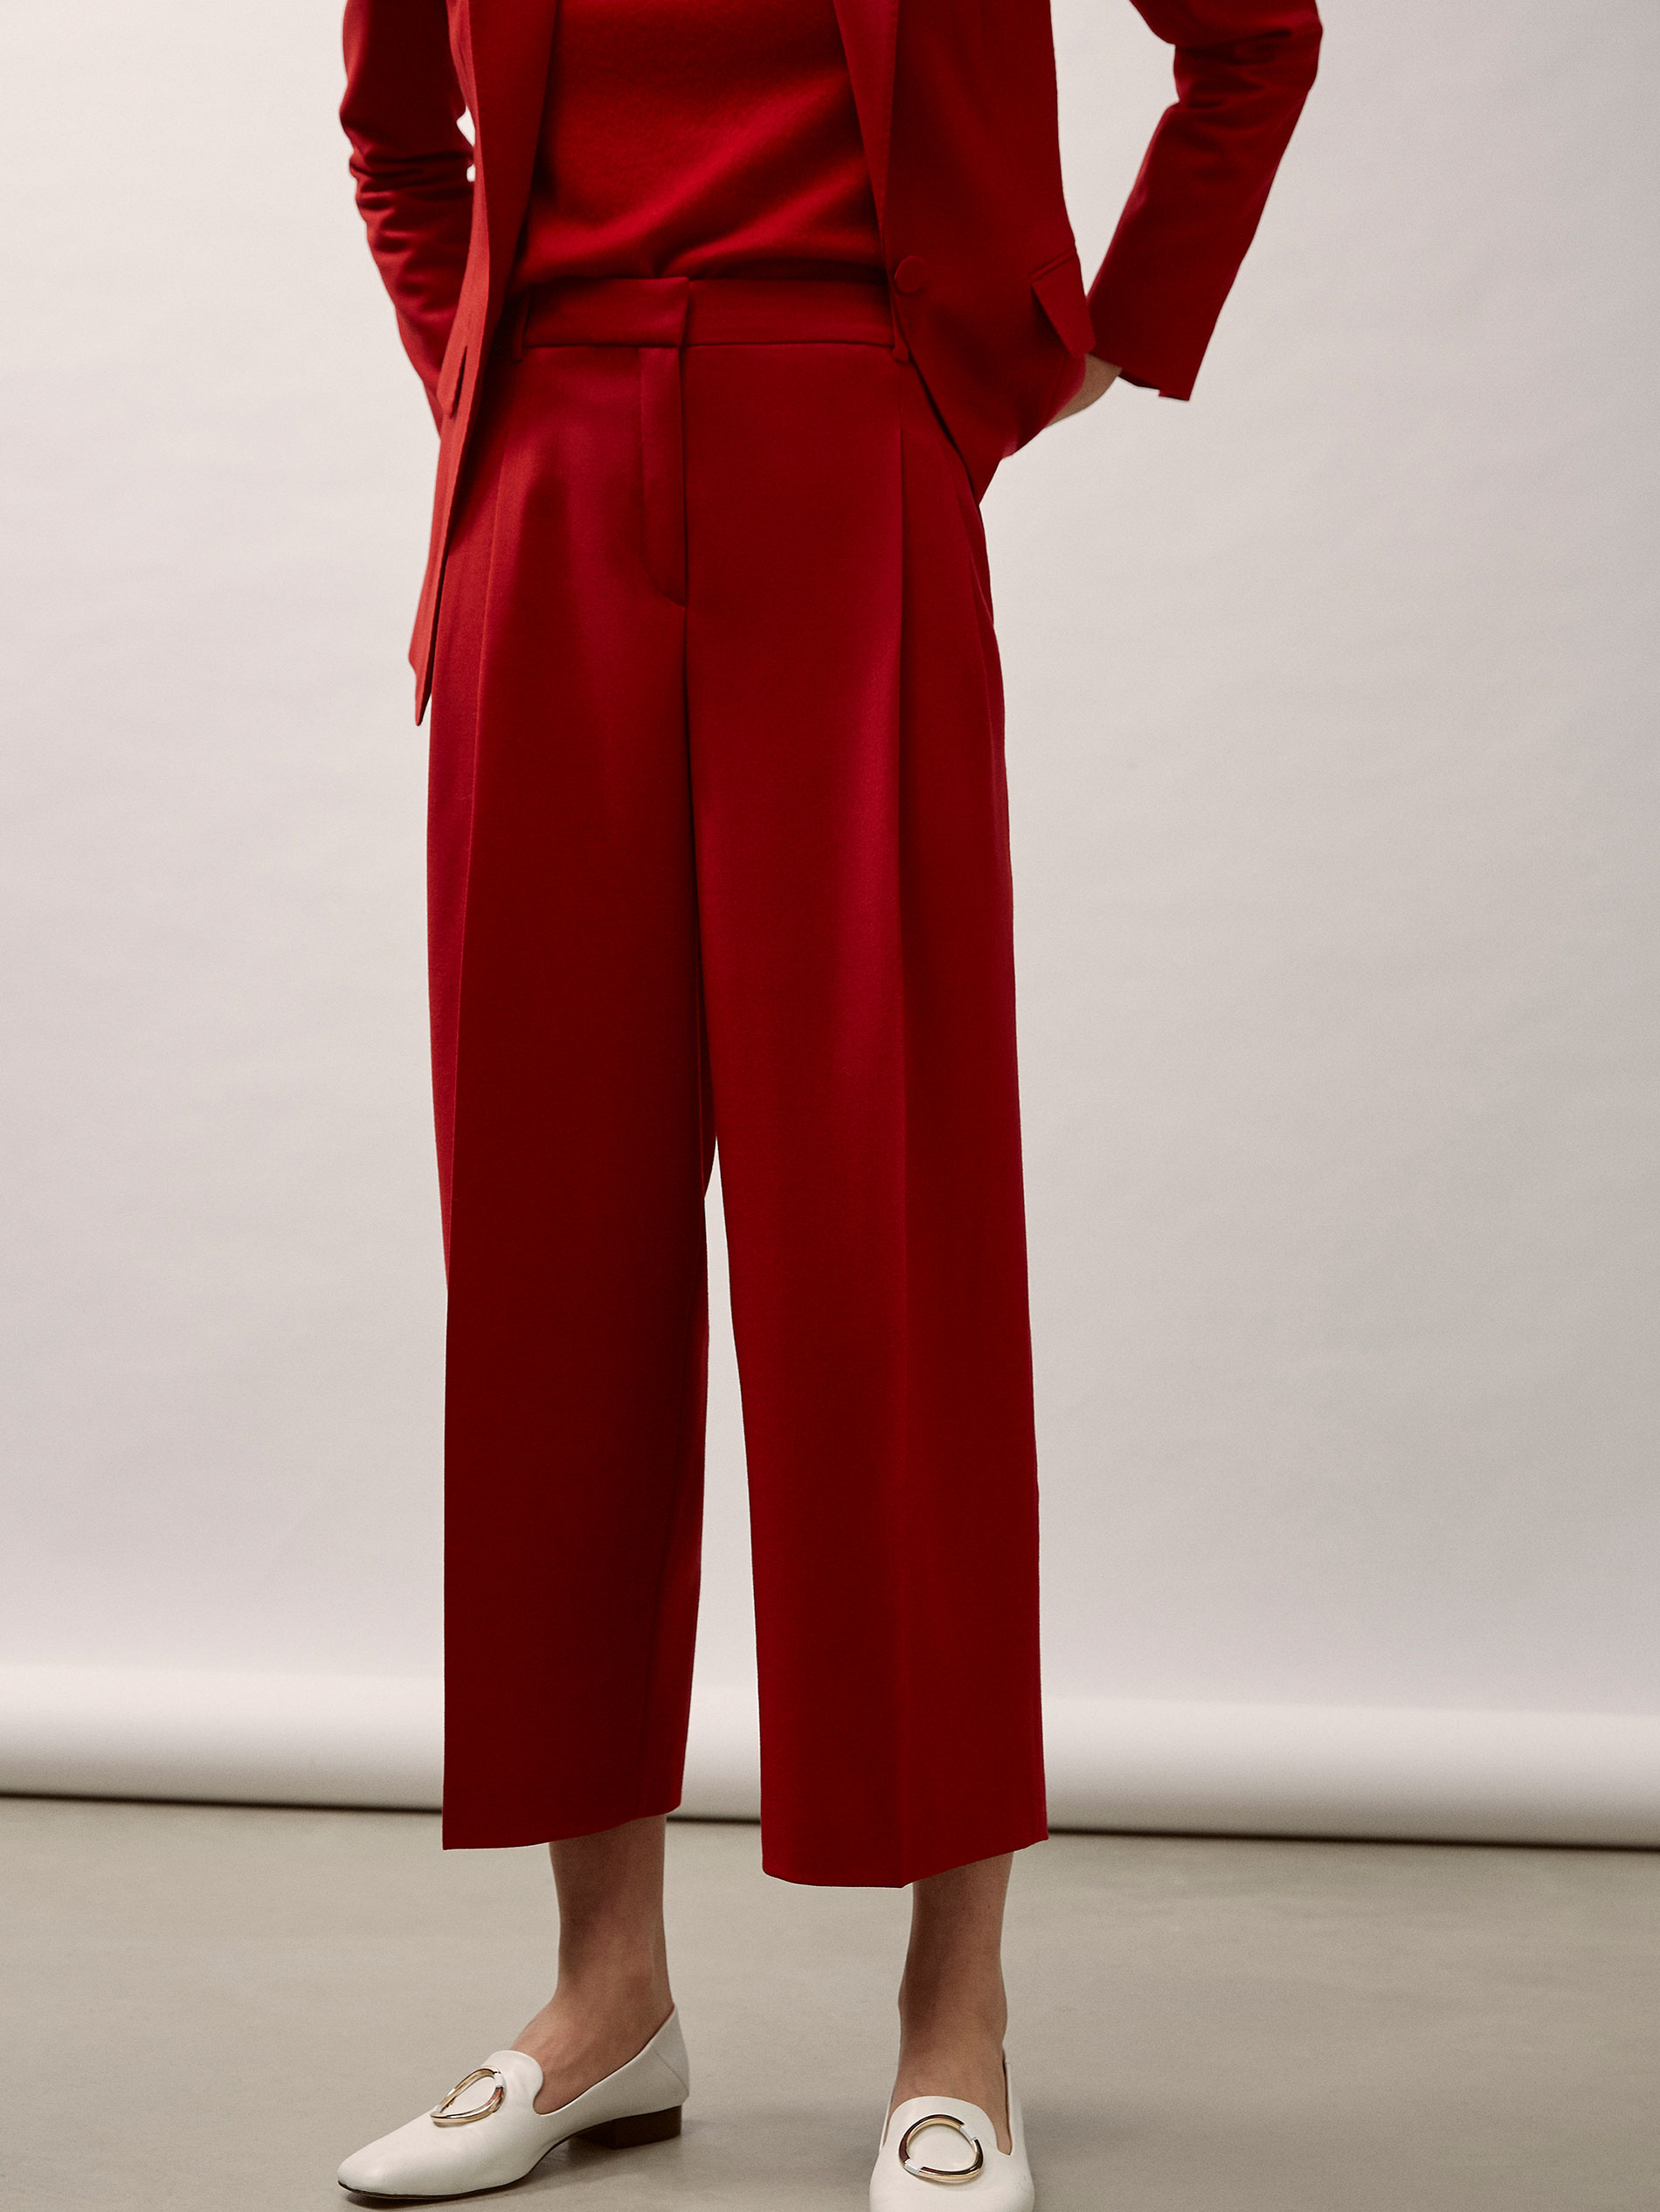 3b487986a66 Massimo Dutti - CROPPED FIT RED WOOL SUIT TROUSERS WITH DARTS DETAIL - 2